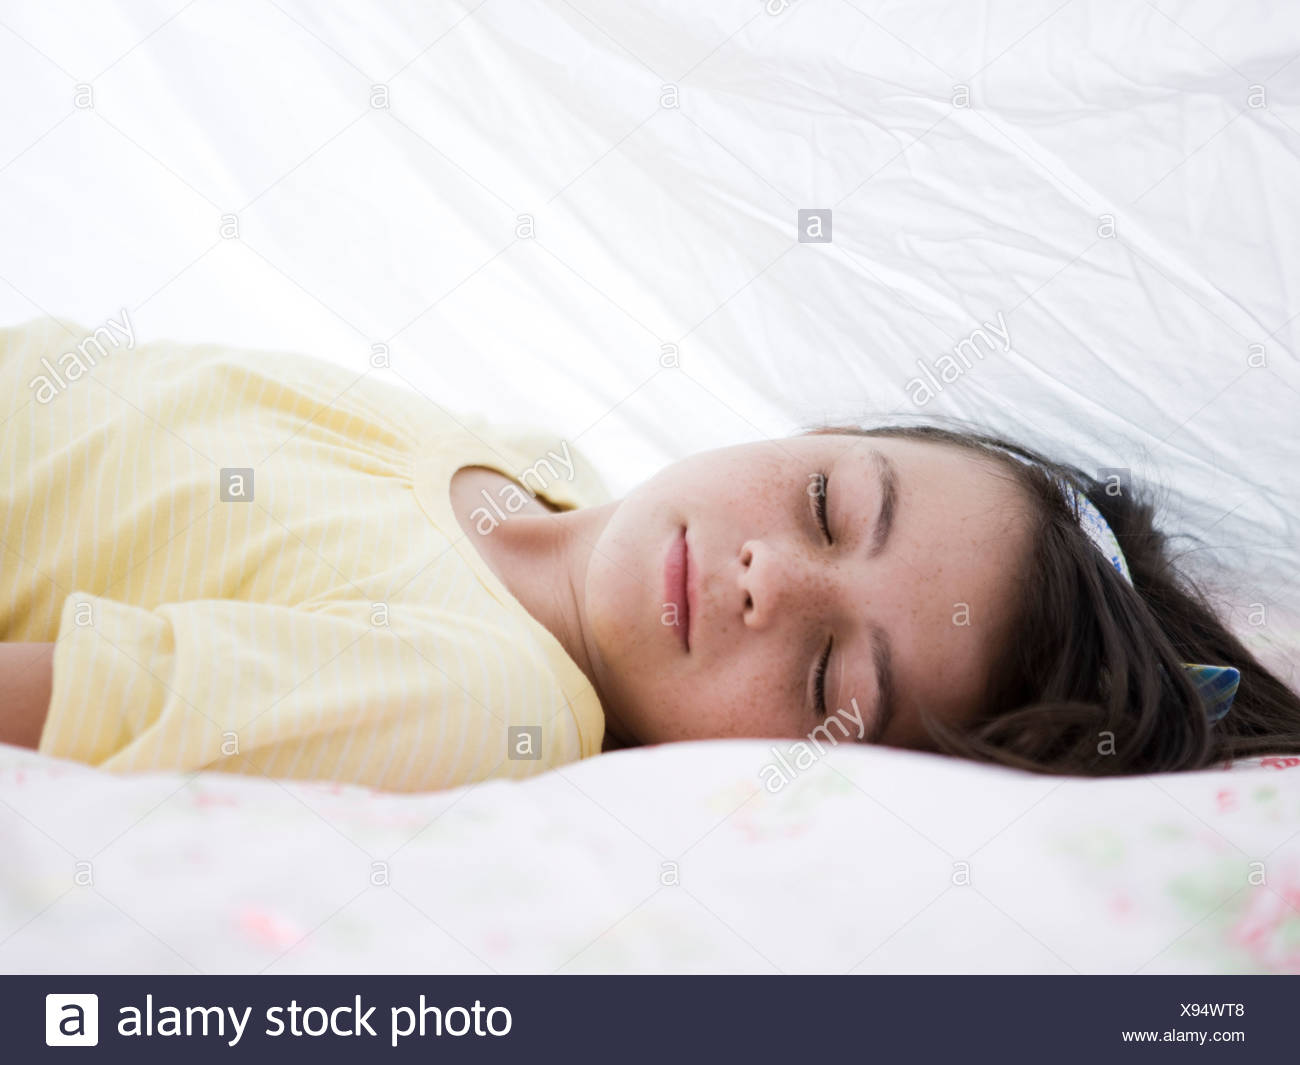 girl under a blanket - Stock Image